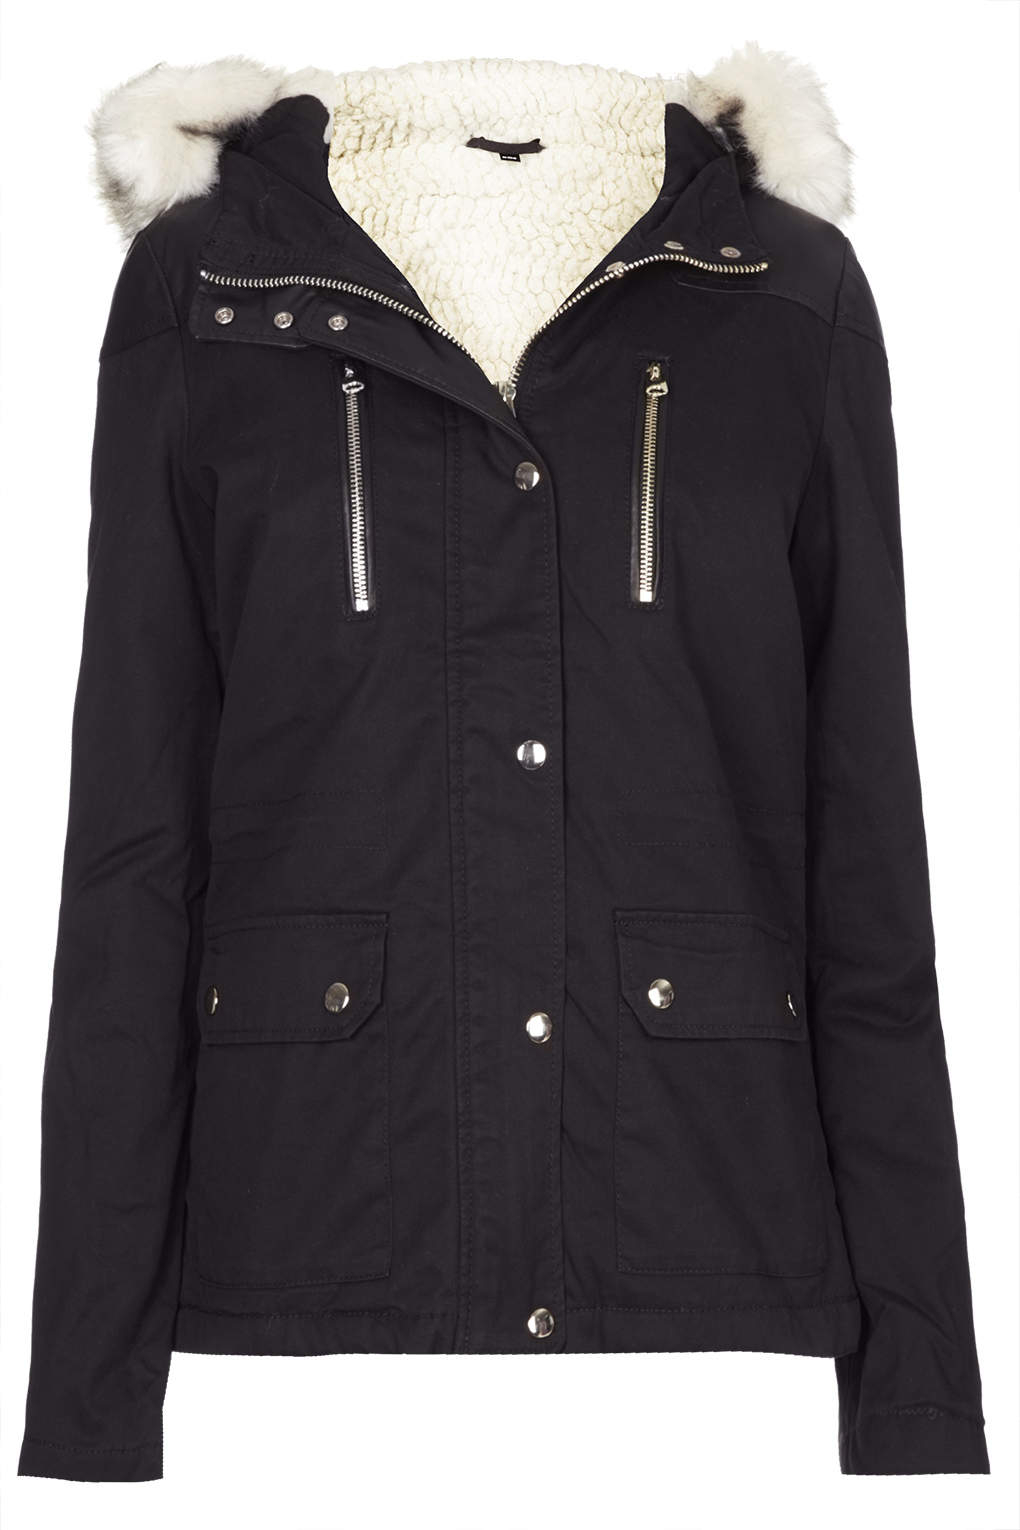 Topshop Short Parka Jacket in Black | Lyst